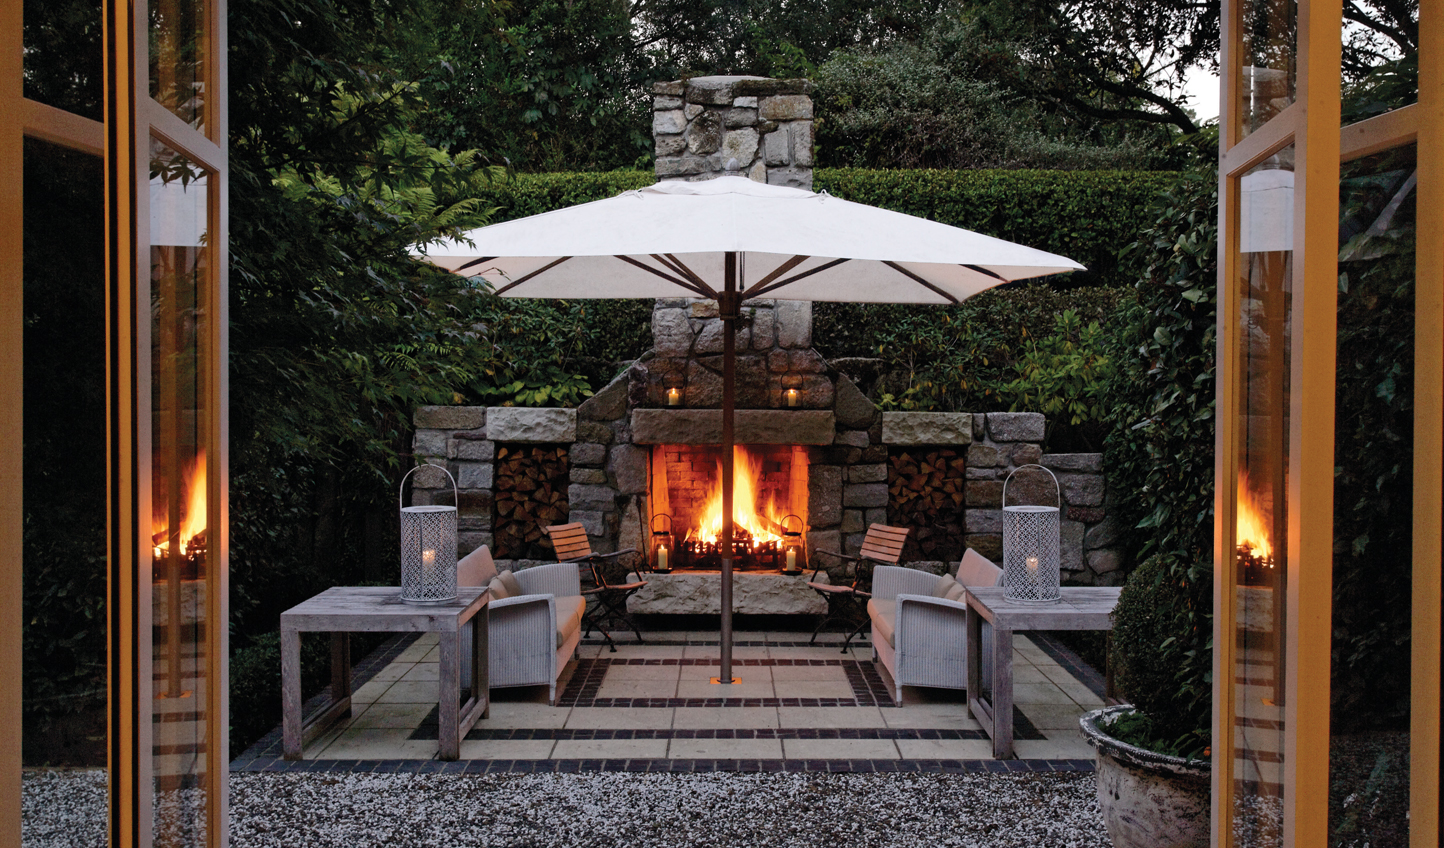 Spend summer evenings by the outdoor fireplace